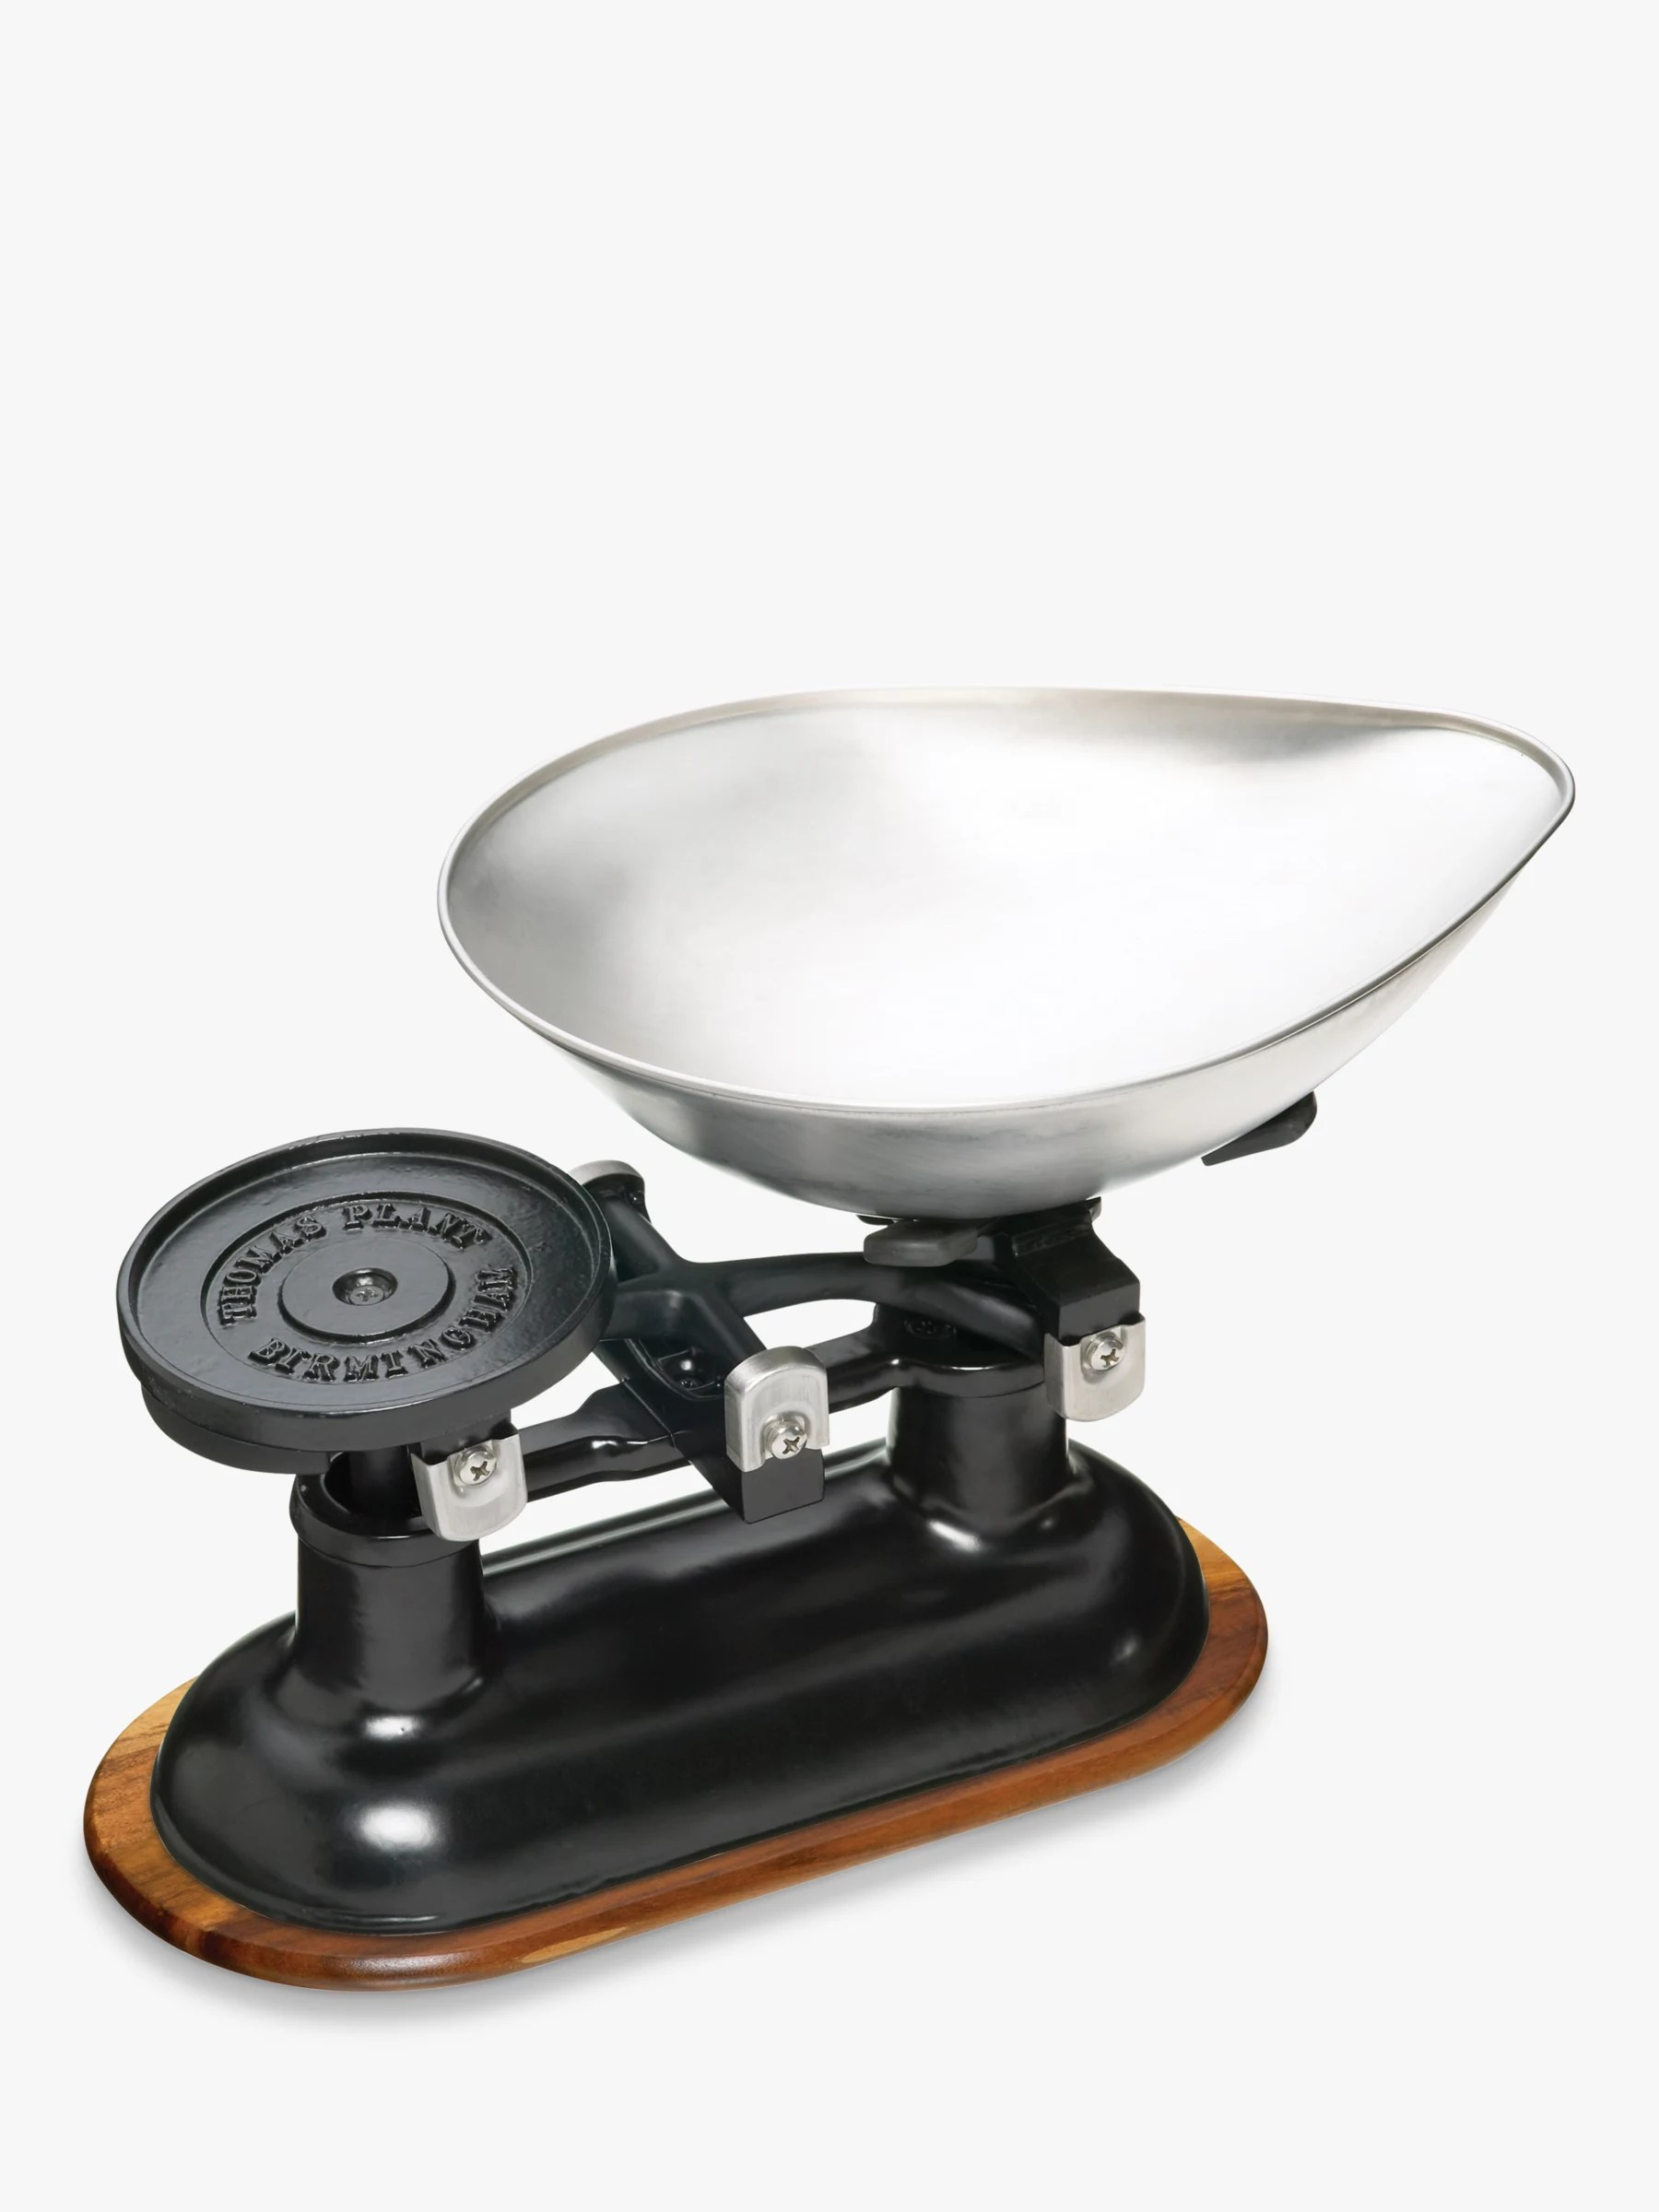 traditional kitchen balance scales